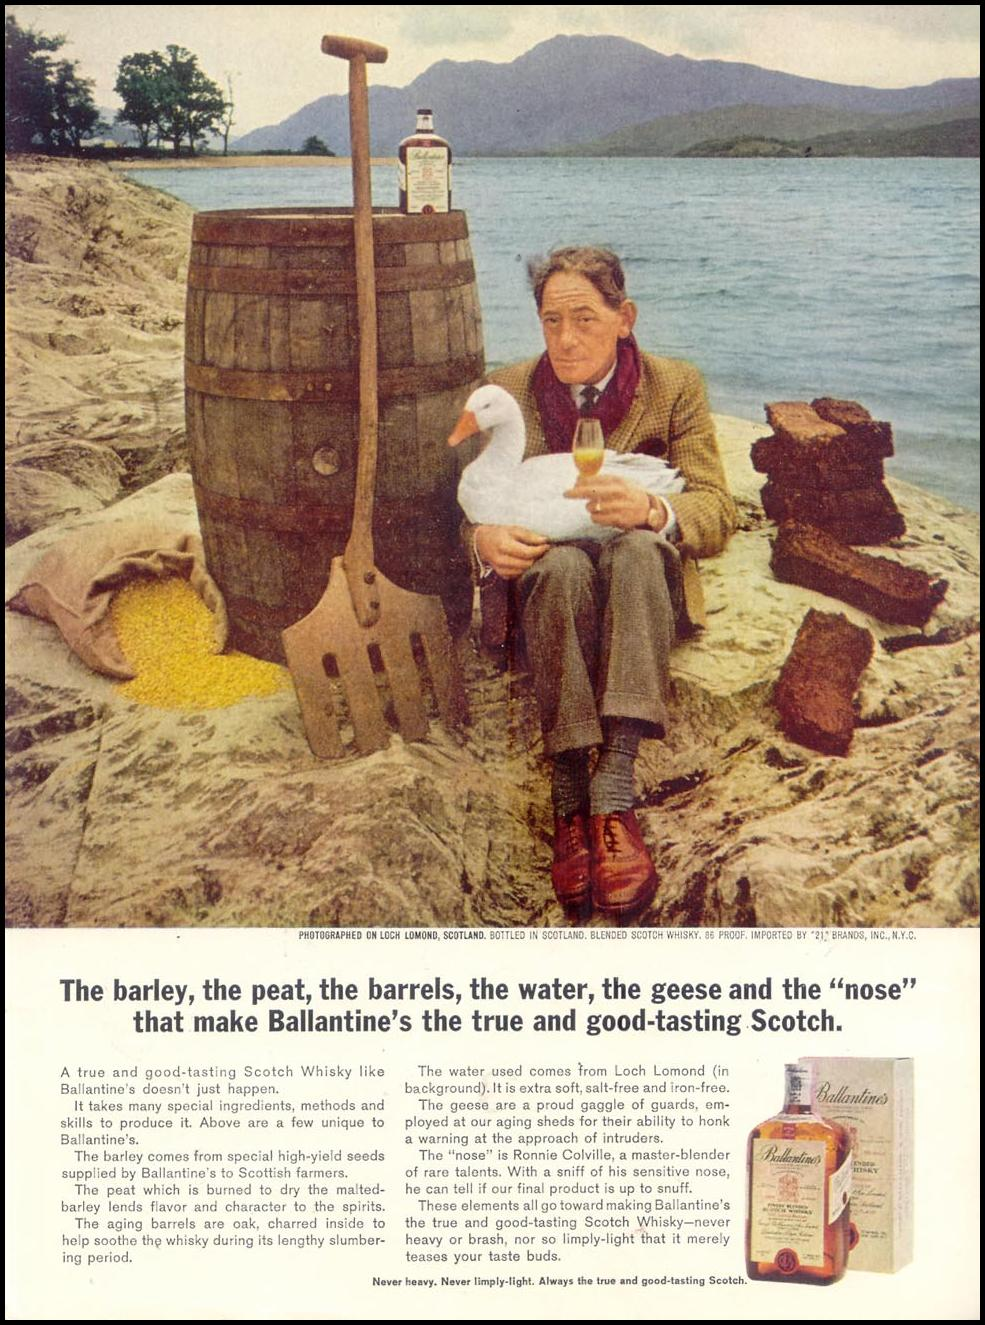 BALLANTINE'S SCOTCH WHISKEY TIME 10/25/1963 INSIDE BACK